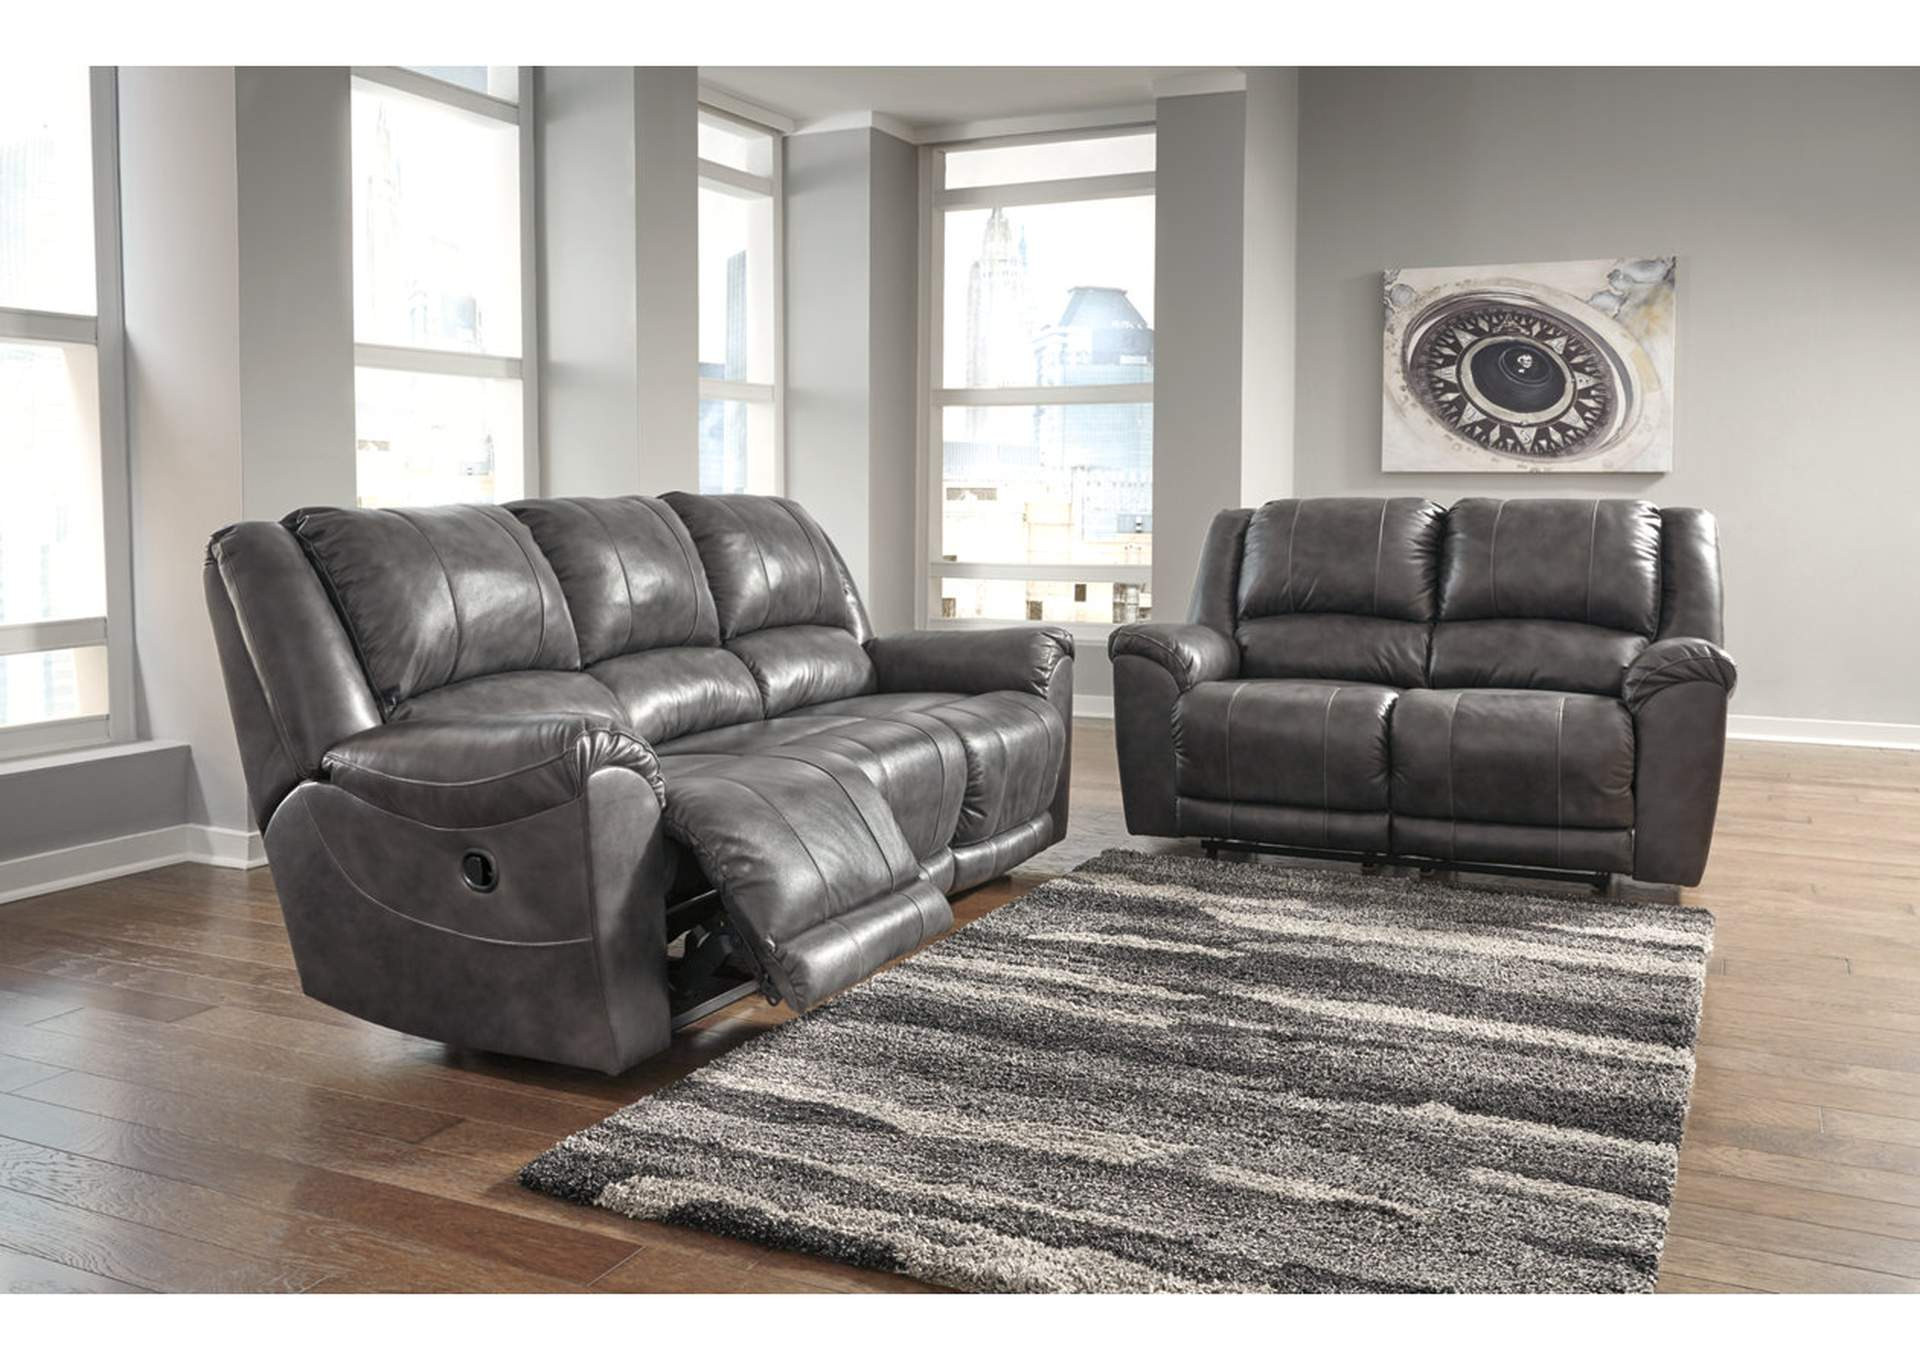 Persiphone Charcoal Reclining Sofa and Loveseat,Signature Design By Ashley